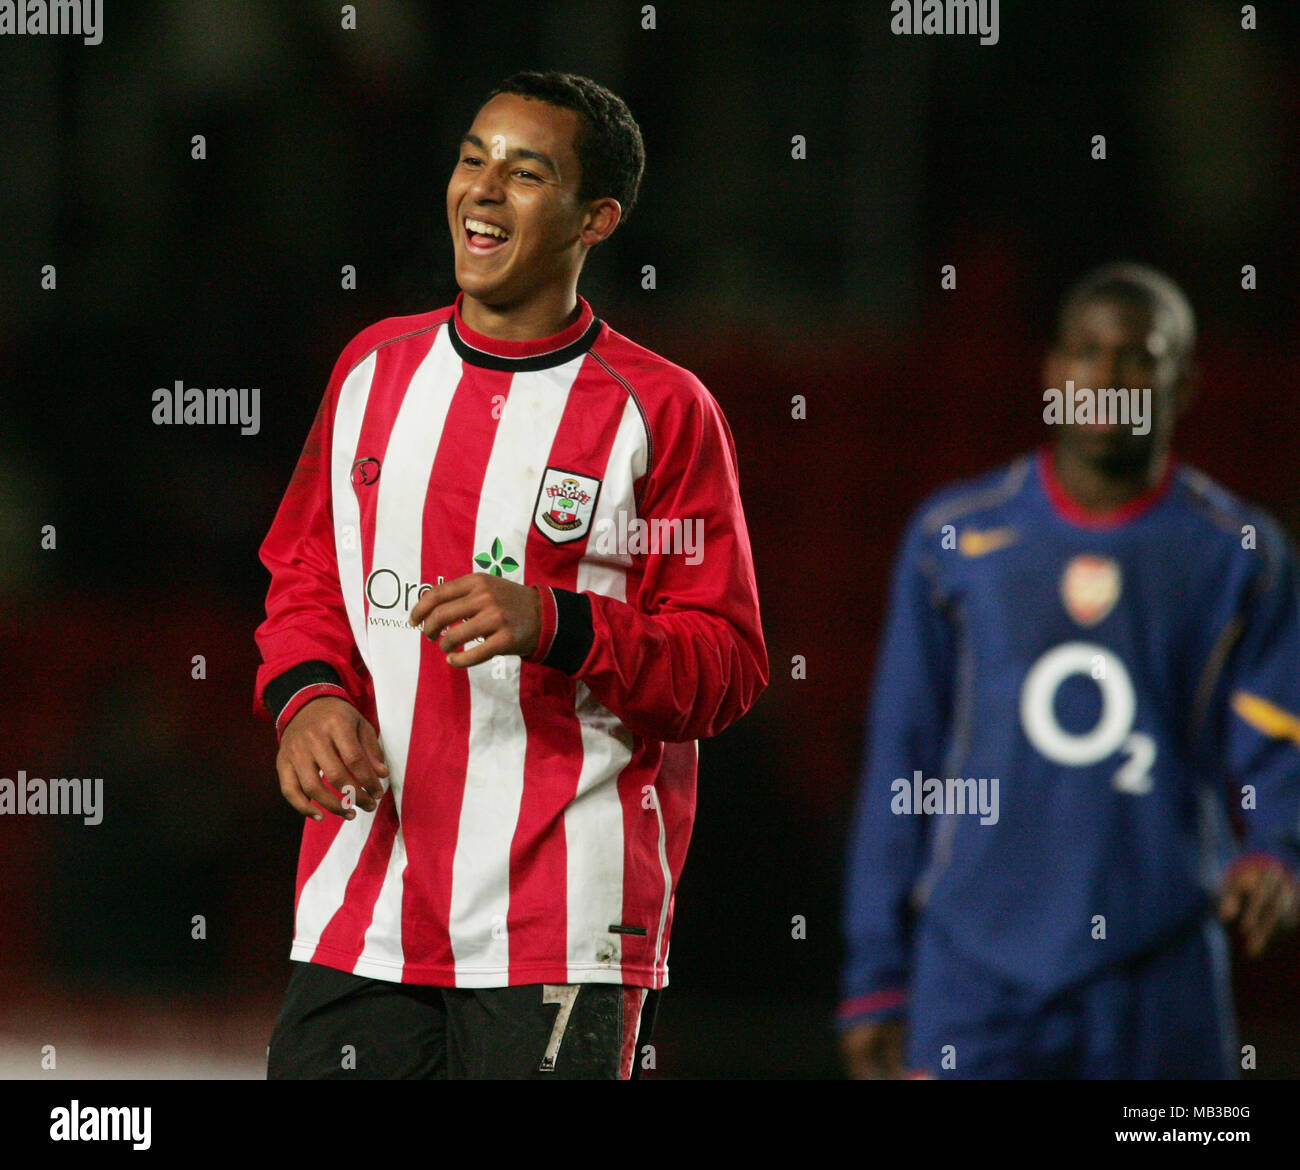 Theo Walcott Playing In The Southampton Youth Team Against Arsenal Stock Photo Alamy